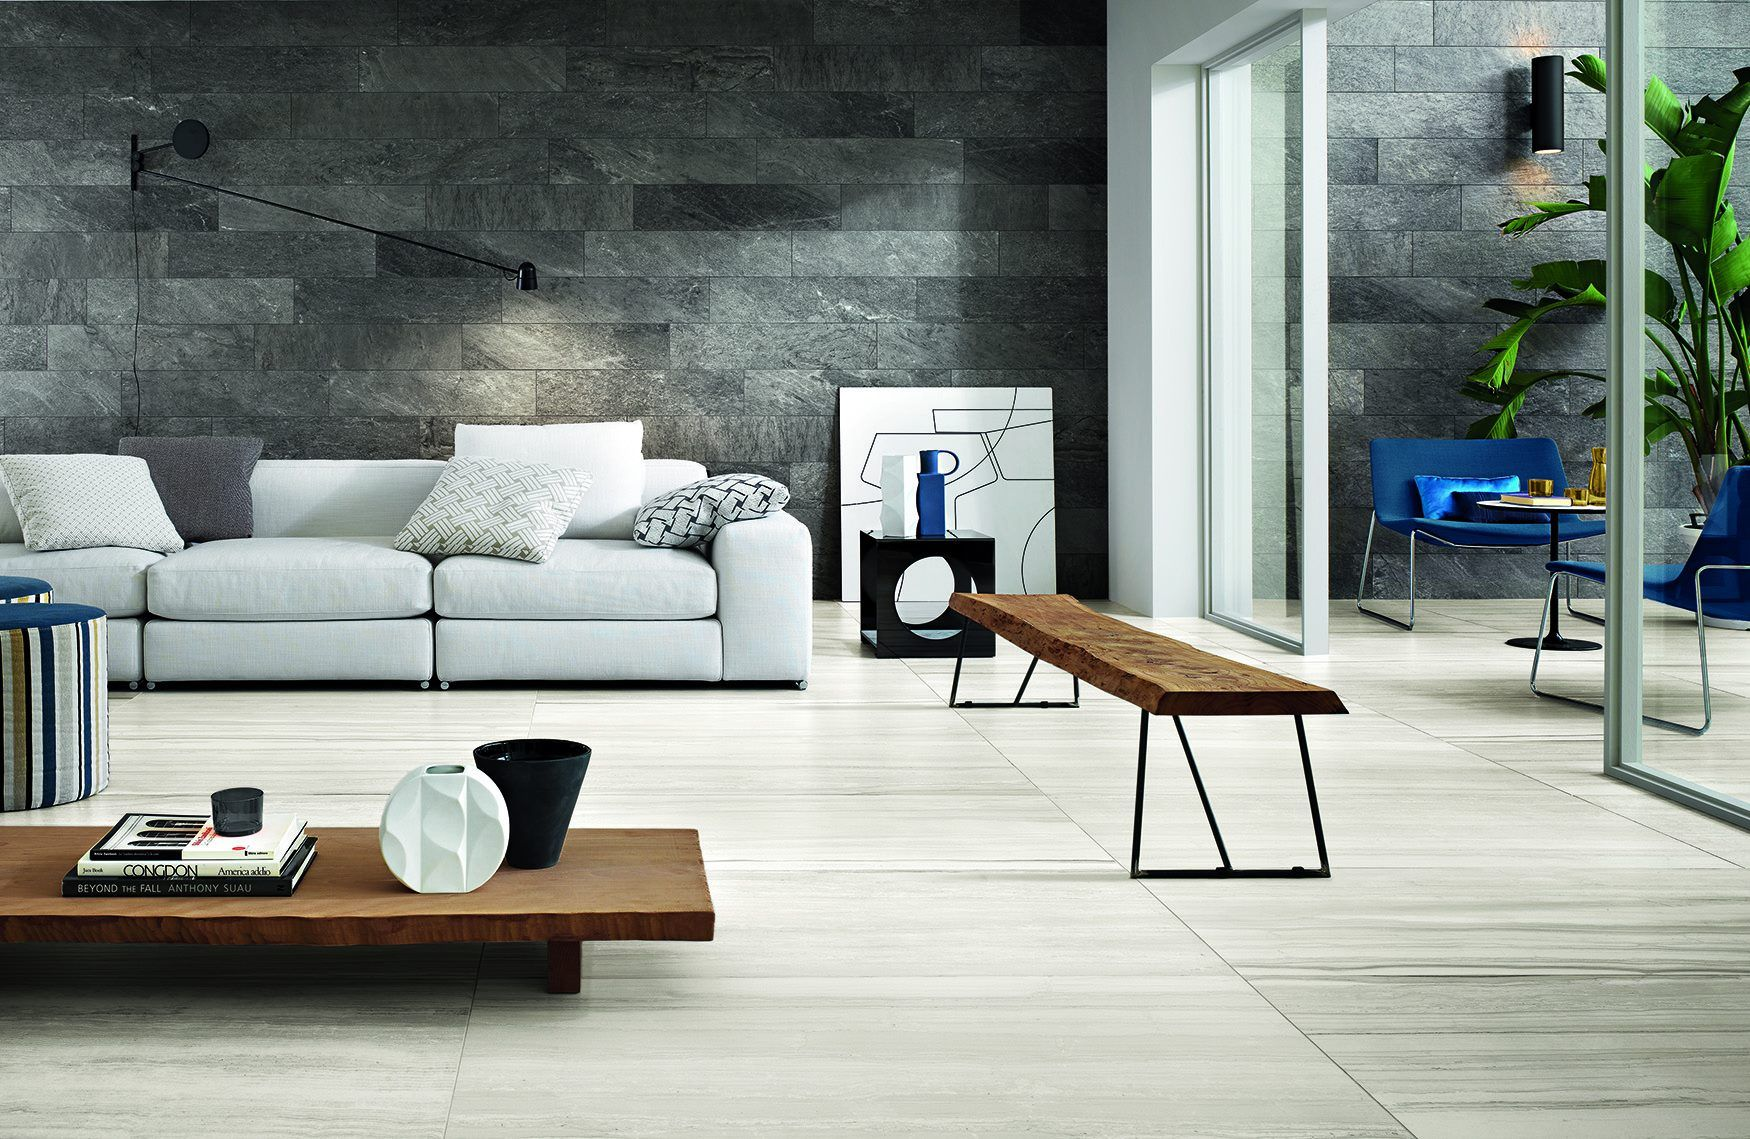 stylist and luxury tile floor designs for living rooms. Indoor outdoor Living  Tiles for all occasions tiles interiordesign living Marble Inspiration Galleries Inredning and Decor